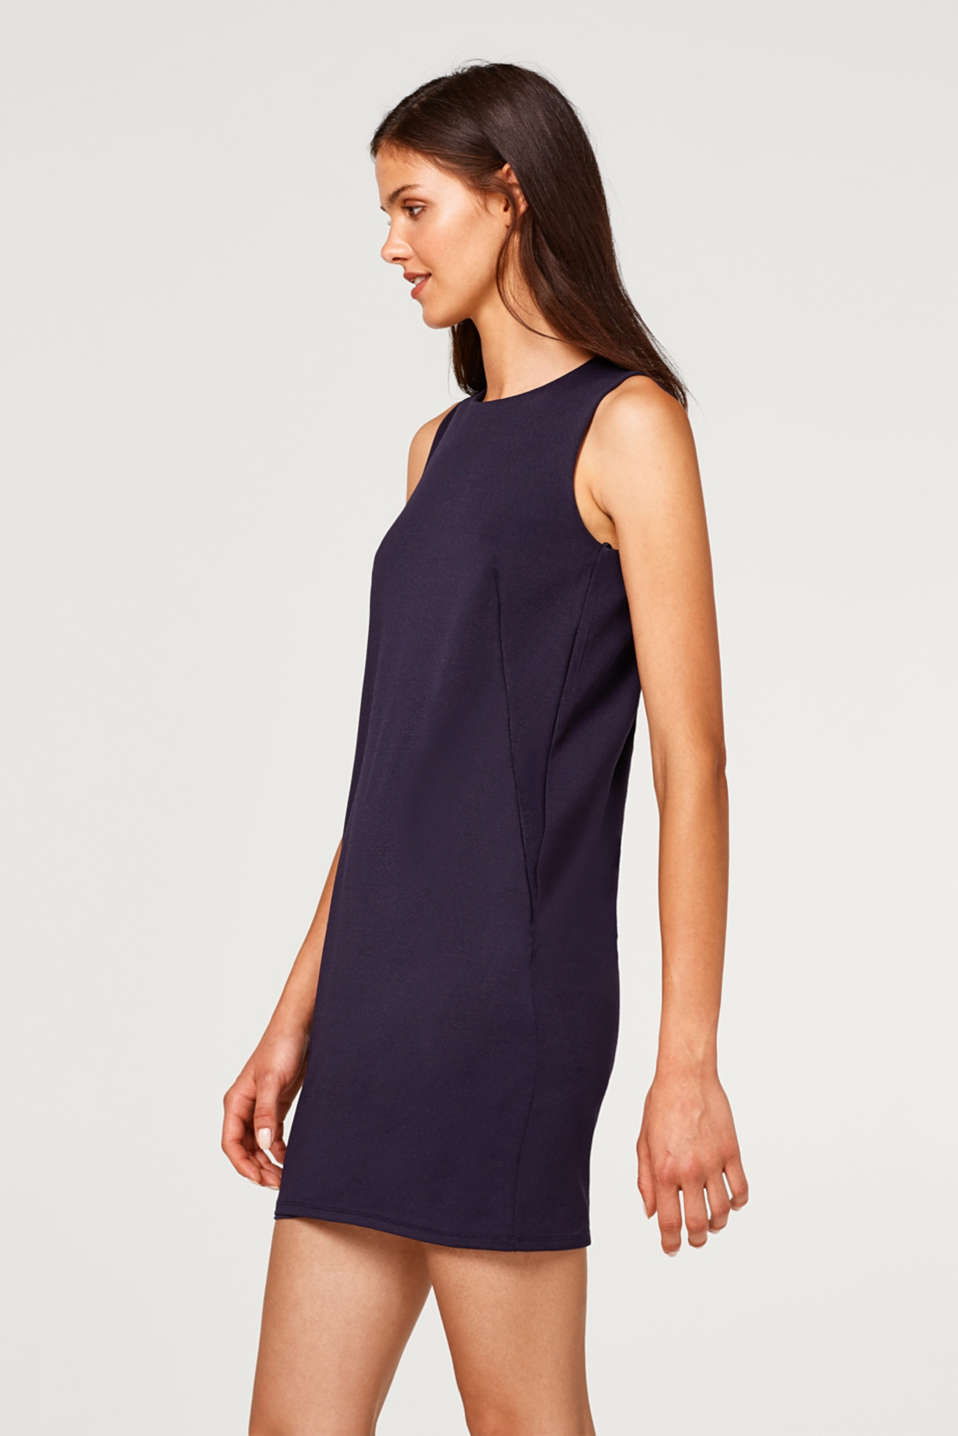 Esprit - Stretch jersey dress with lace on the back